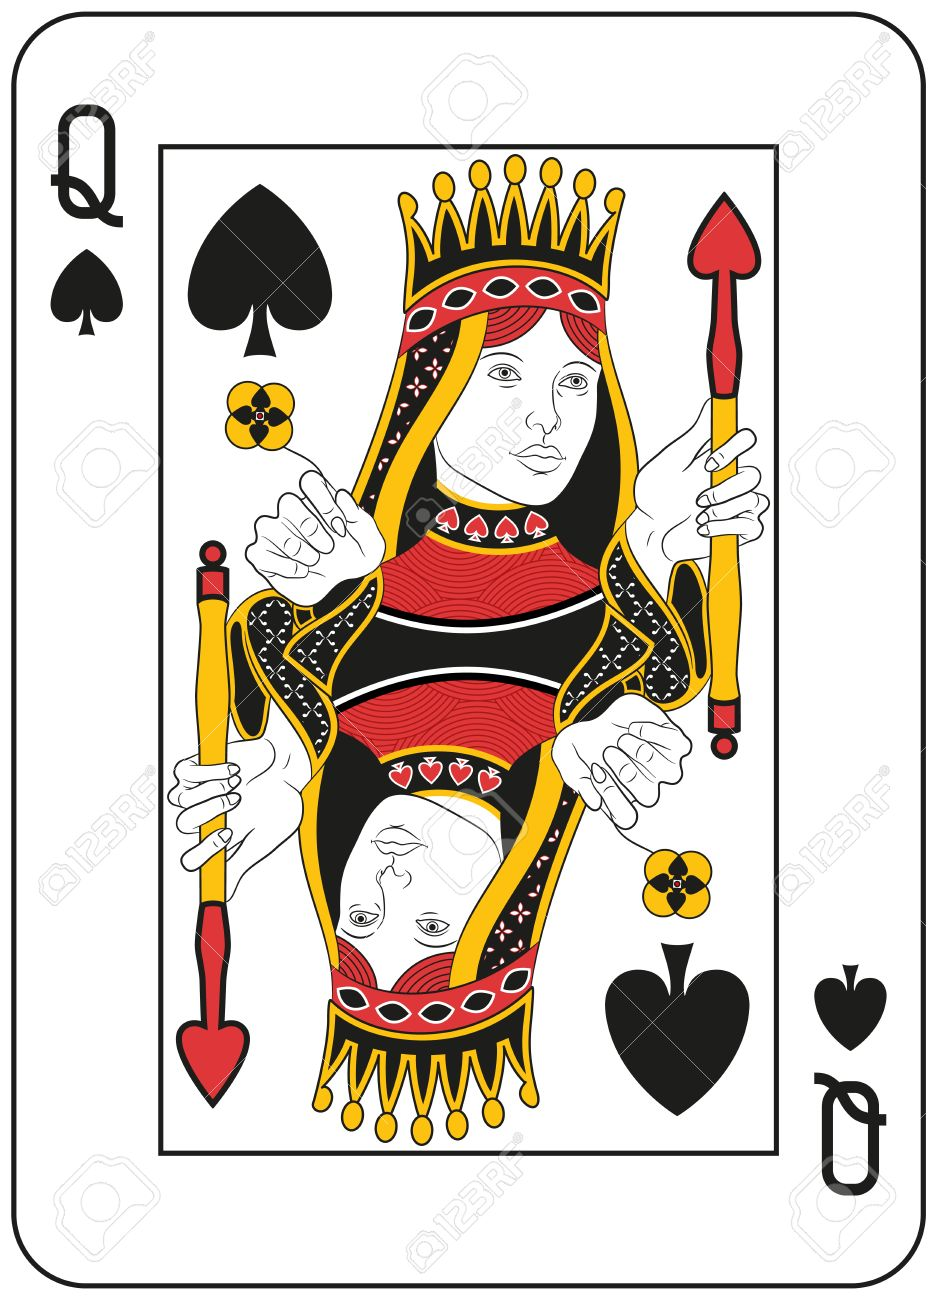 937x1300 1,212 Queen Of Spades Stock Illustrations, Cliparts And Royalty